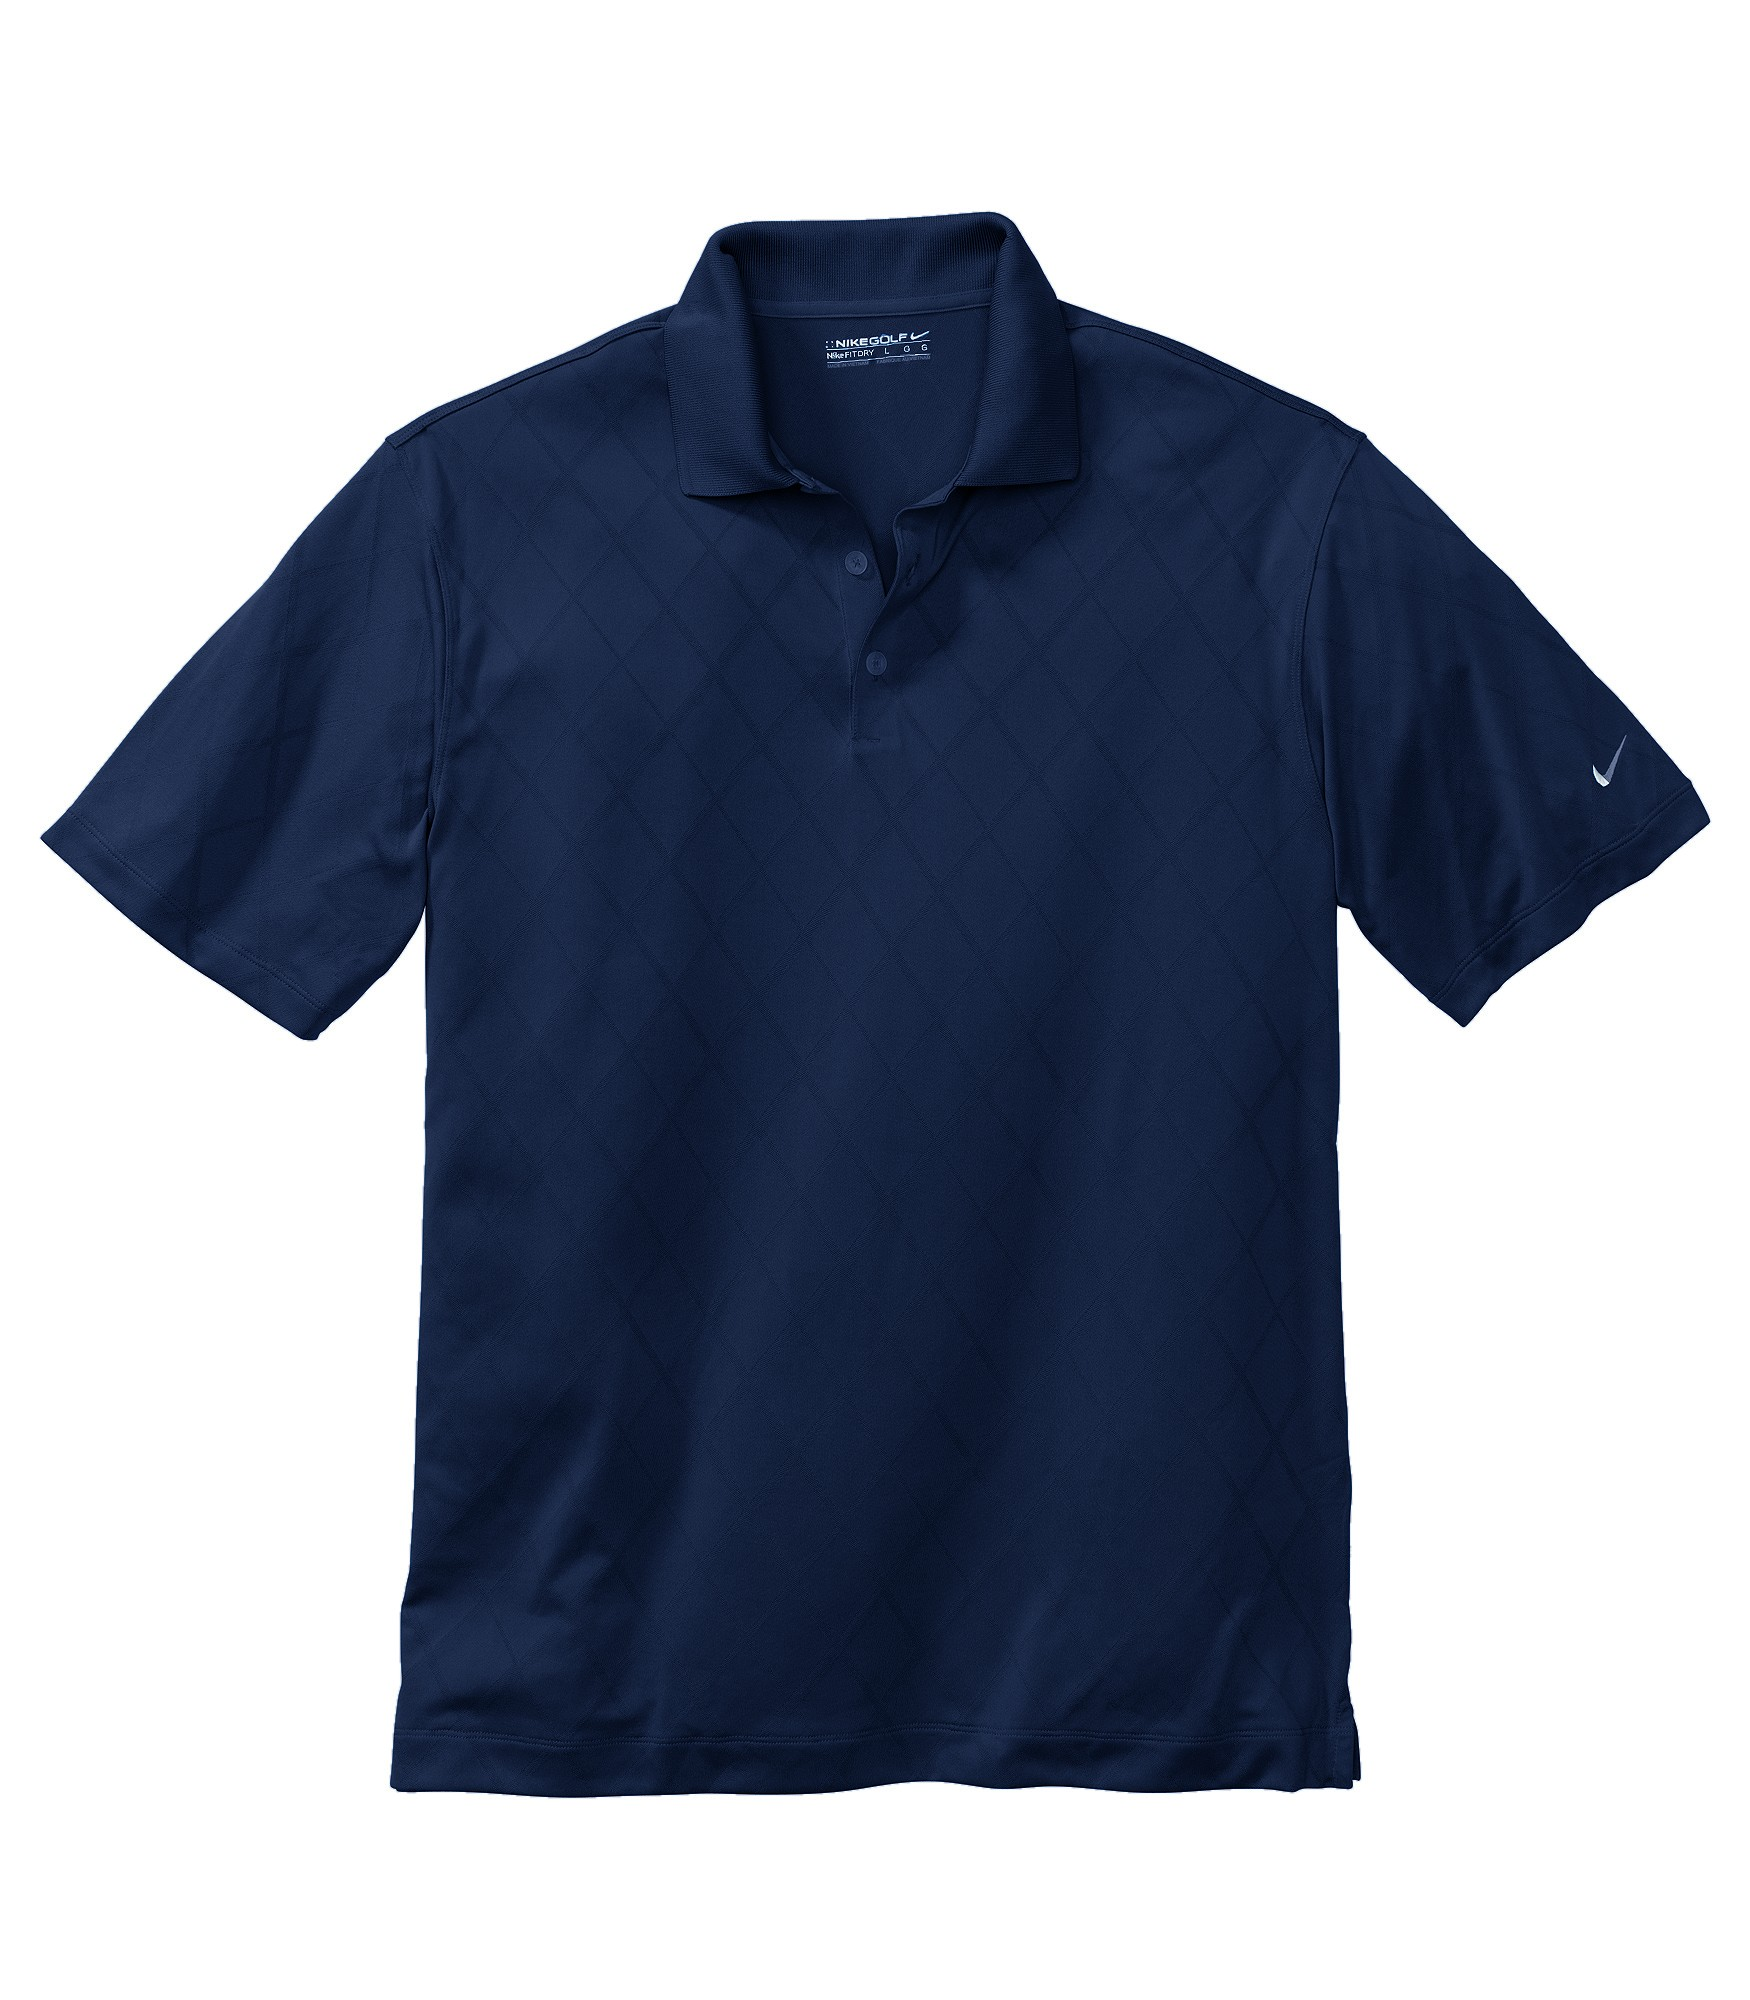 ae08d625f ... Nike Golf Dri-FIT Cross-Over Texture Polo. Zoom. Loading zoom